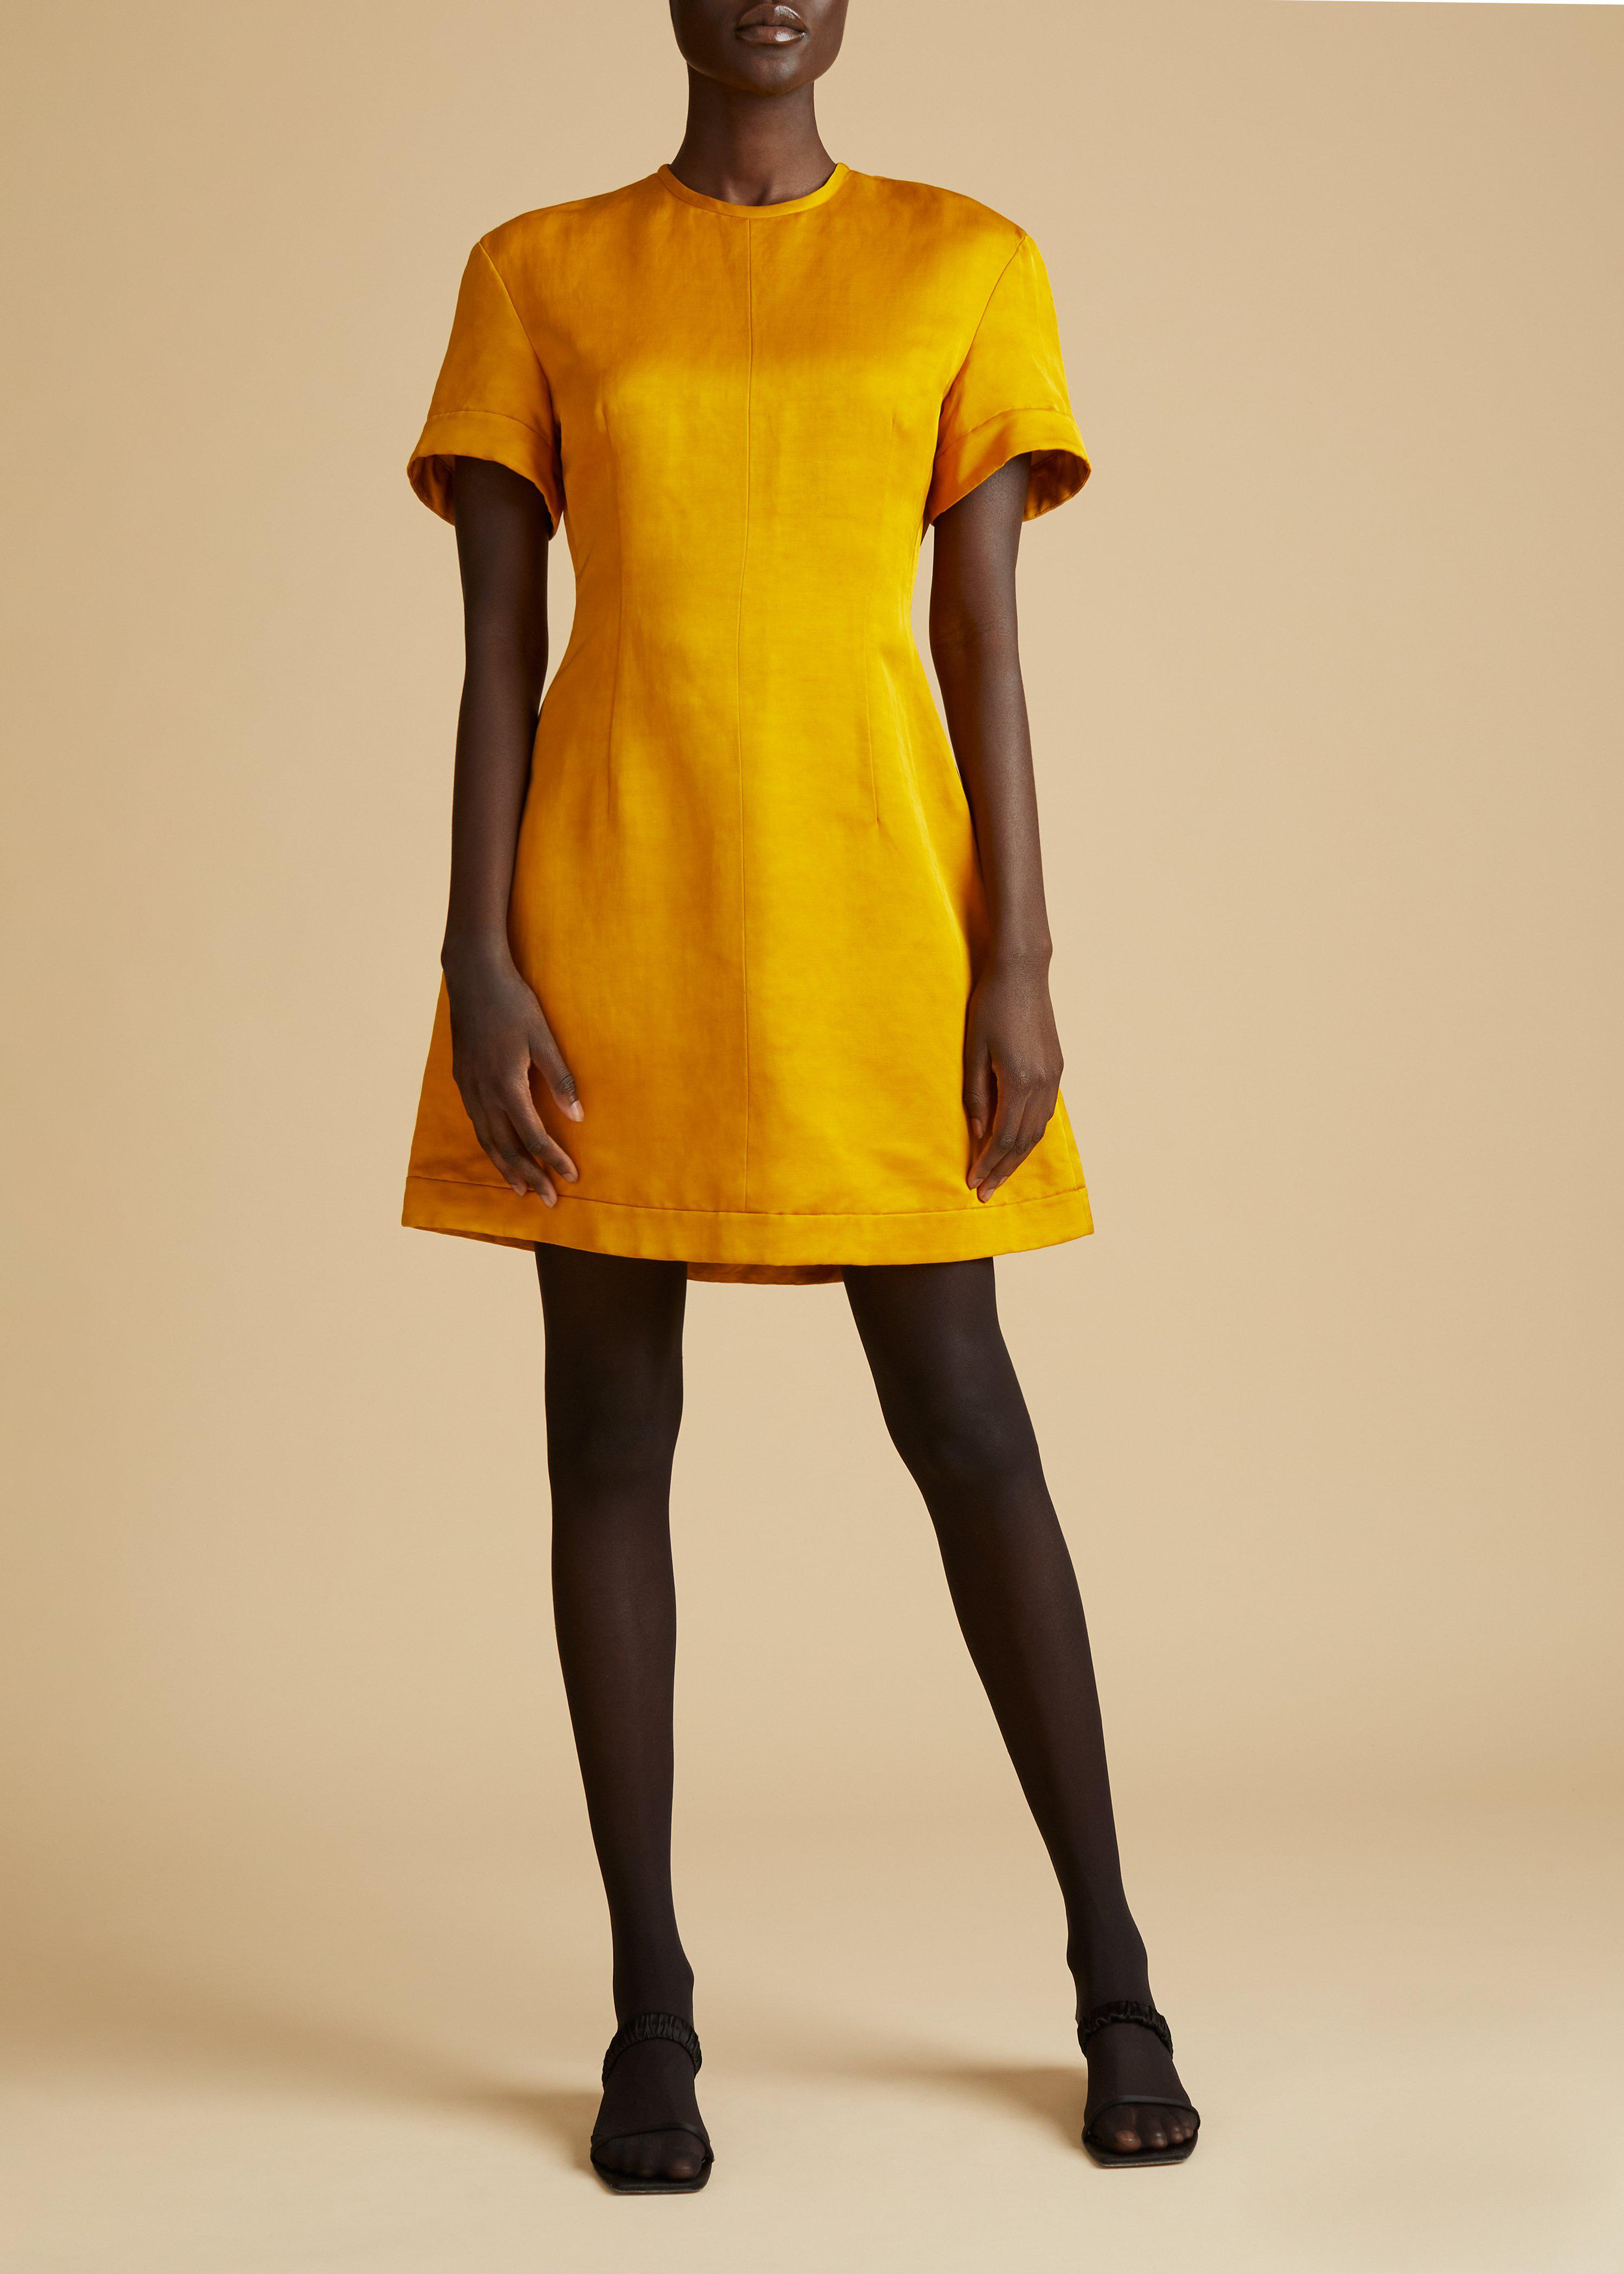 The Marcia Dress in Marigold